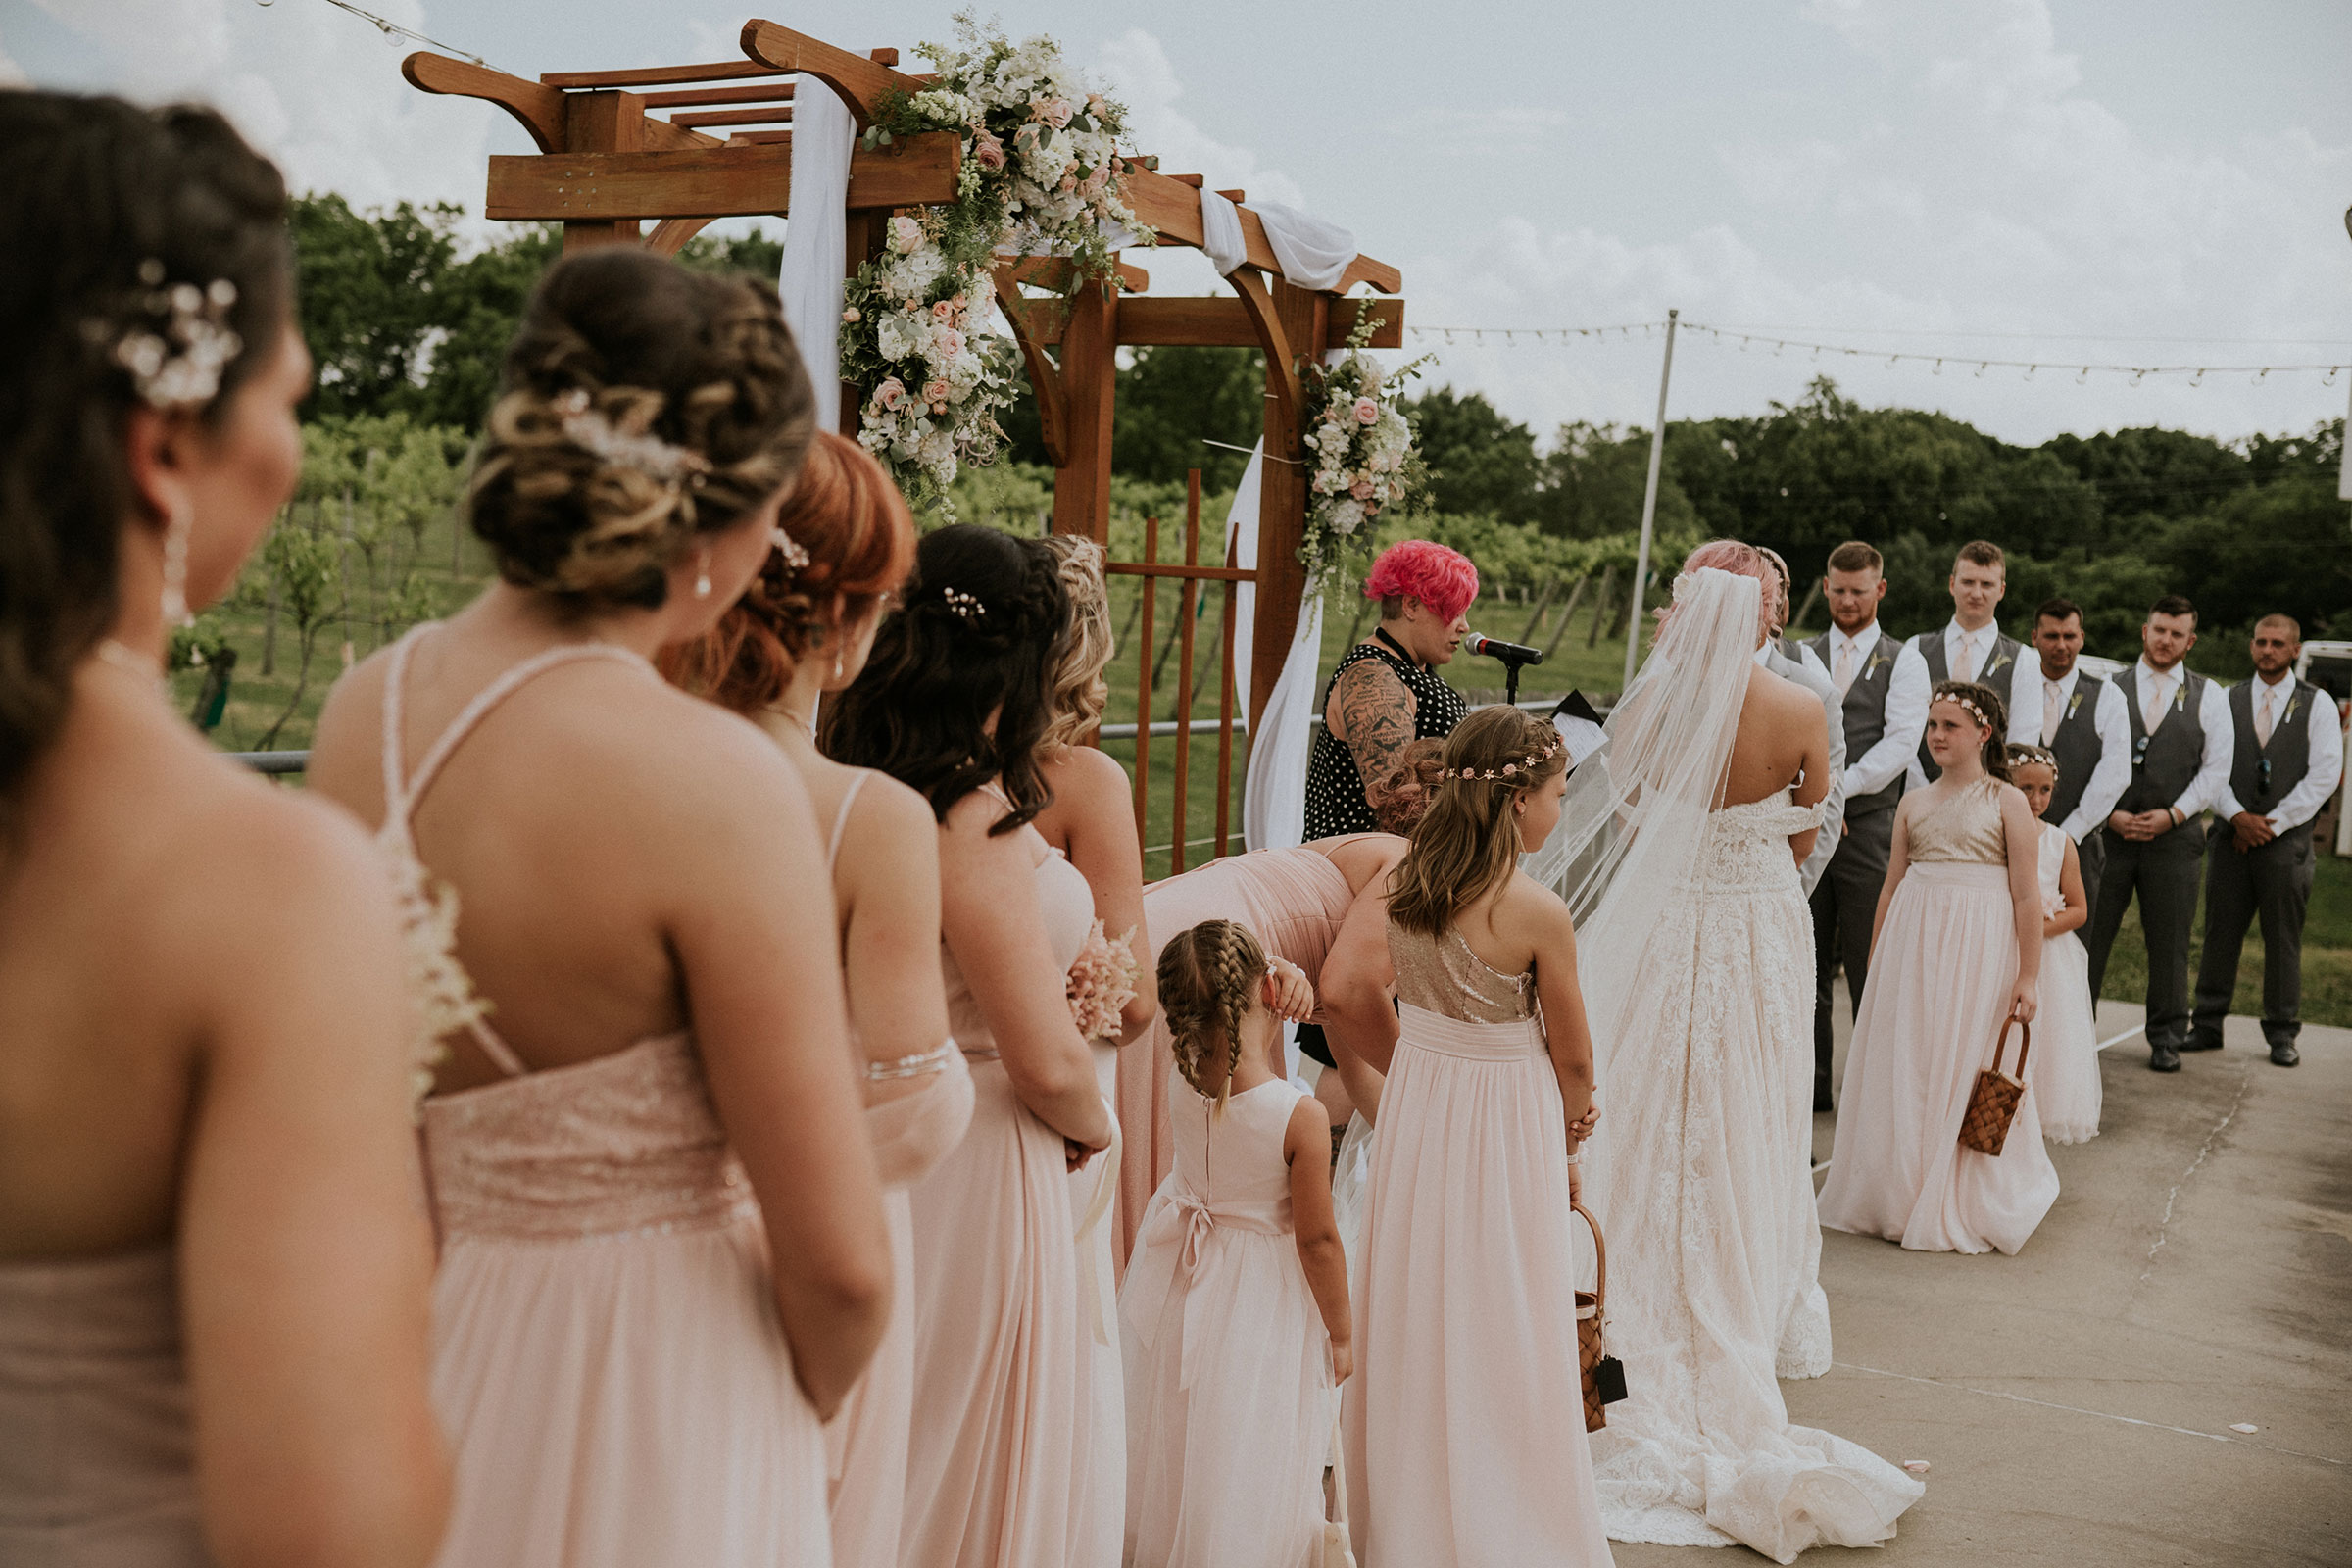 bridesmaids-and-groomsmen-watching-couple-during-ceremony-summerset-winery-indianola-iowa-raelyn-ramey-photography.jpg